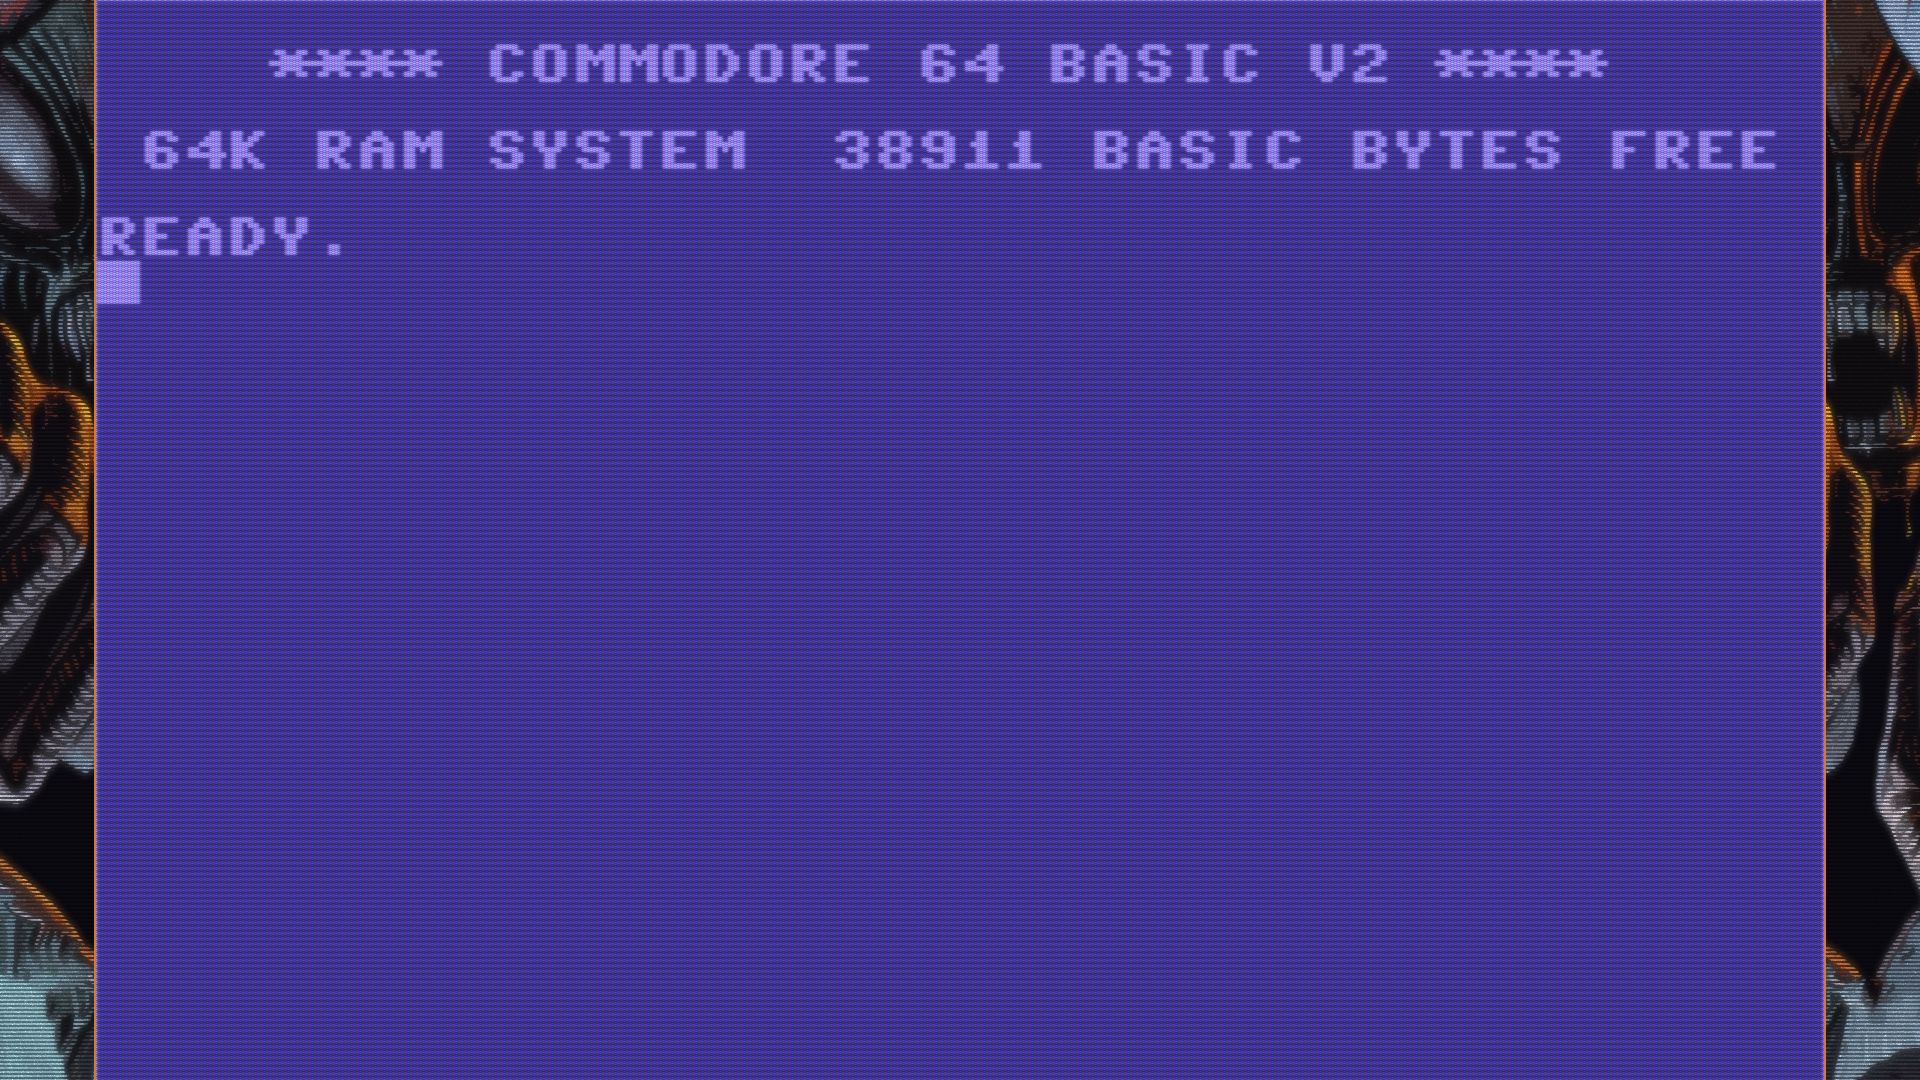 C64 Dreams (massive curated C64 collection) - Emulation